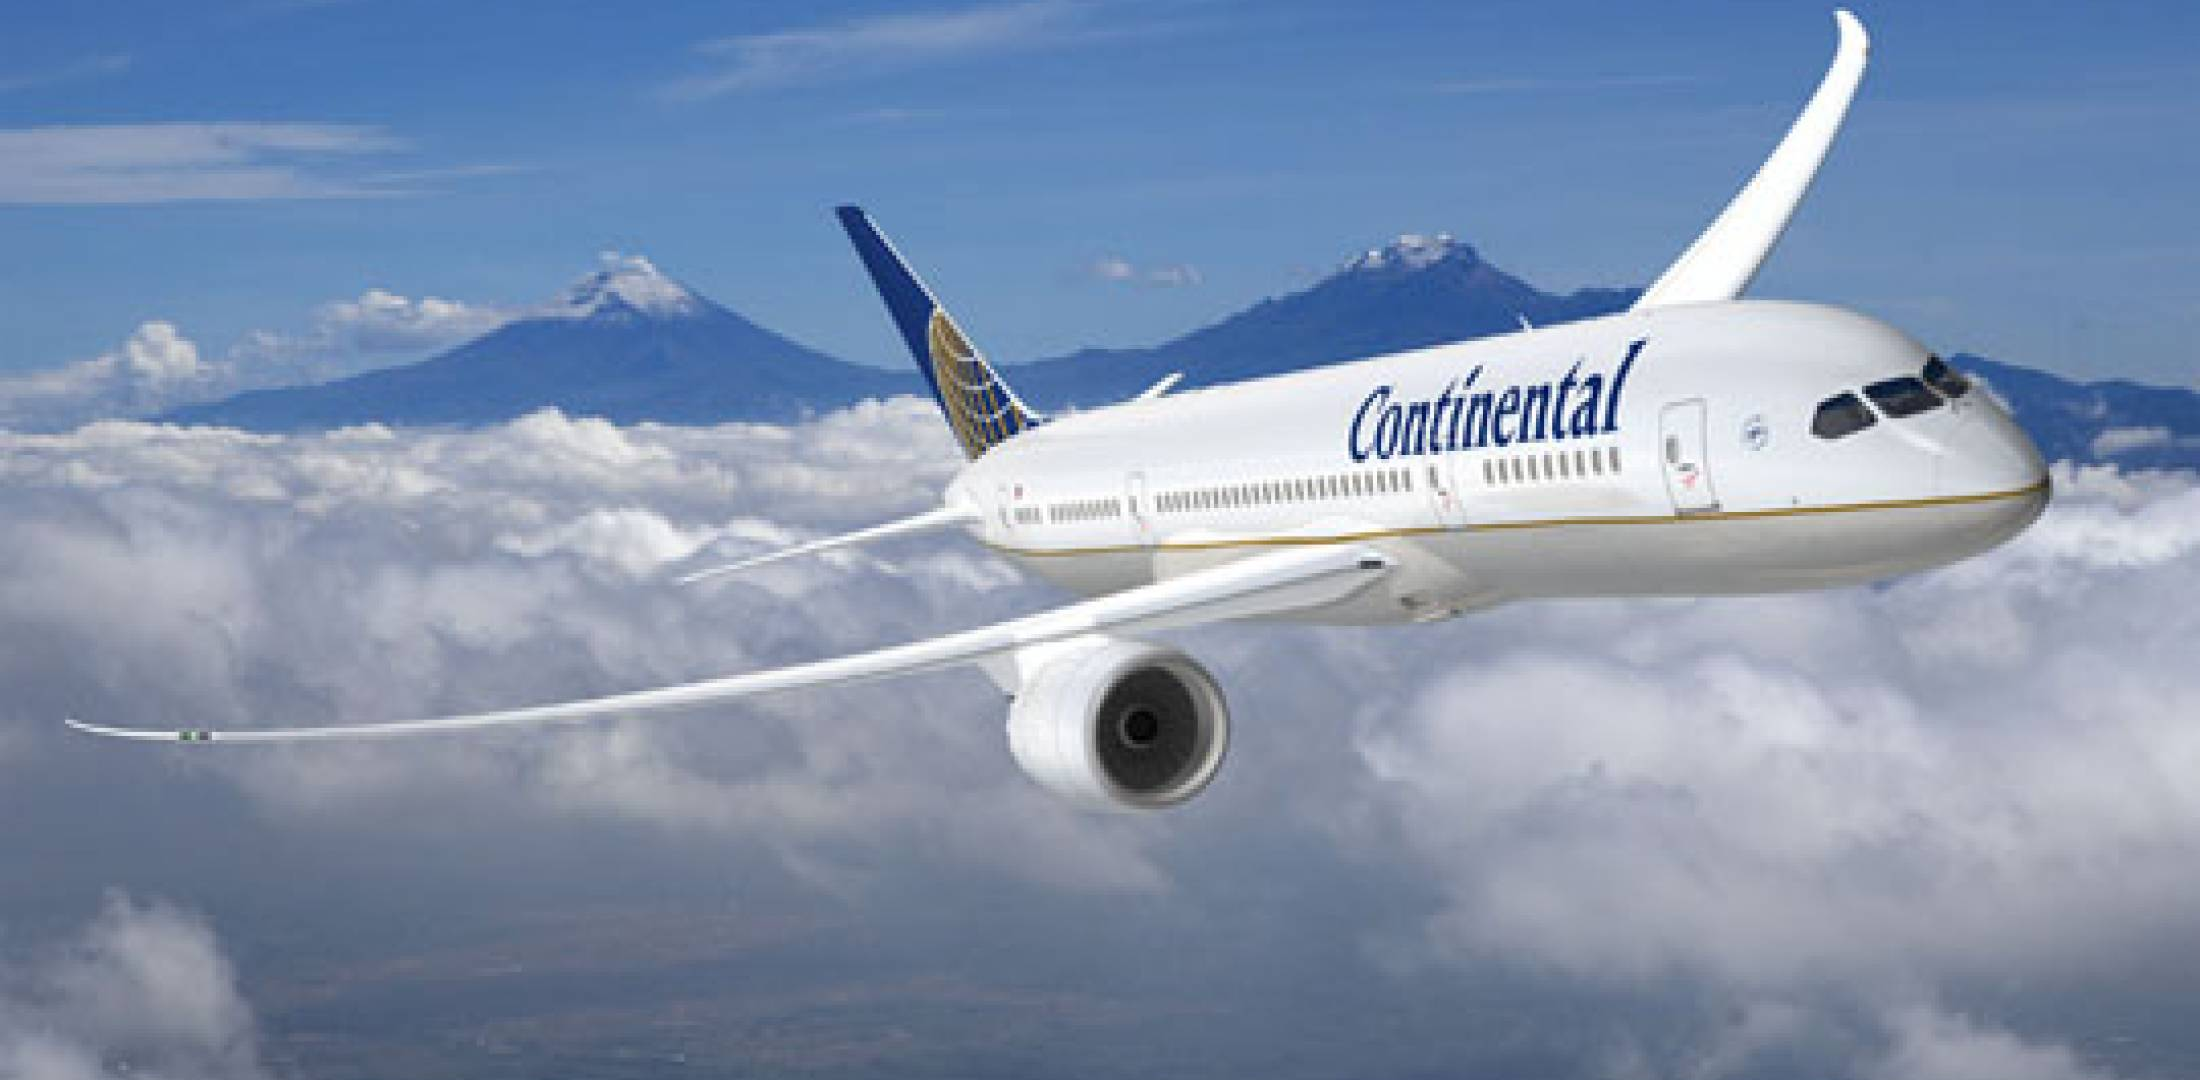 Both United and Continental hold orders for Boeing 787s. Continental recently...